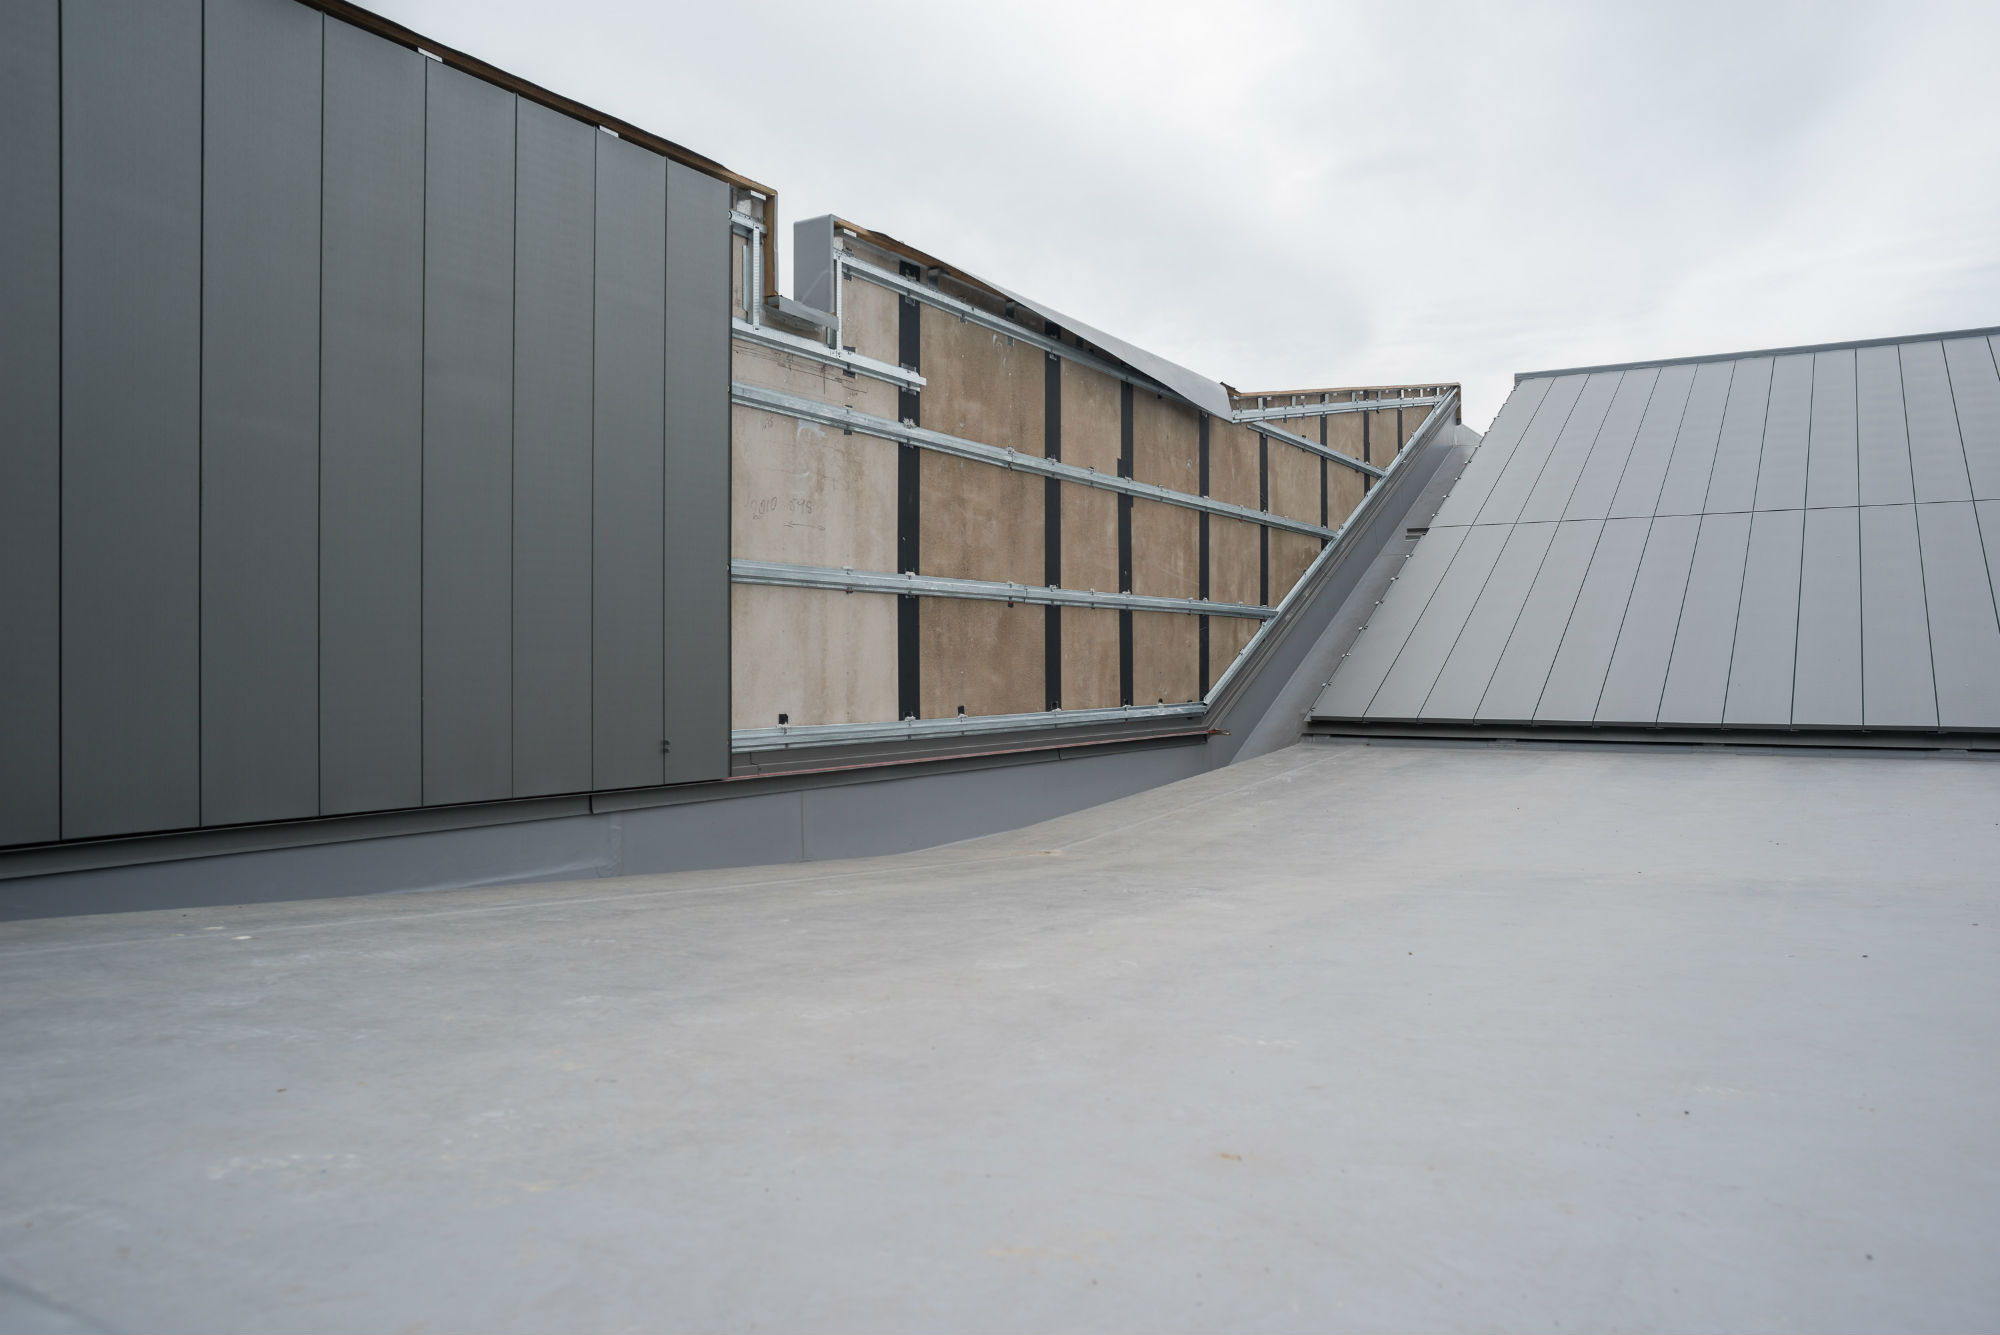 Commercial Amp Industrial Roofing Amp Cladding Contour